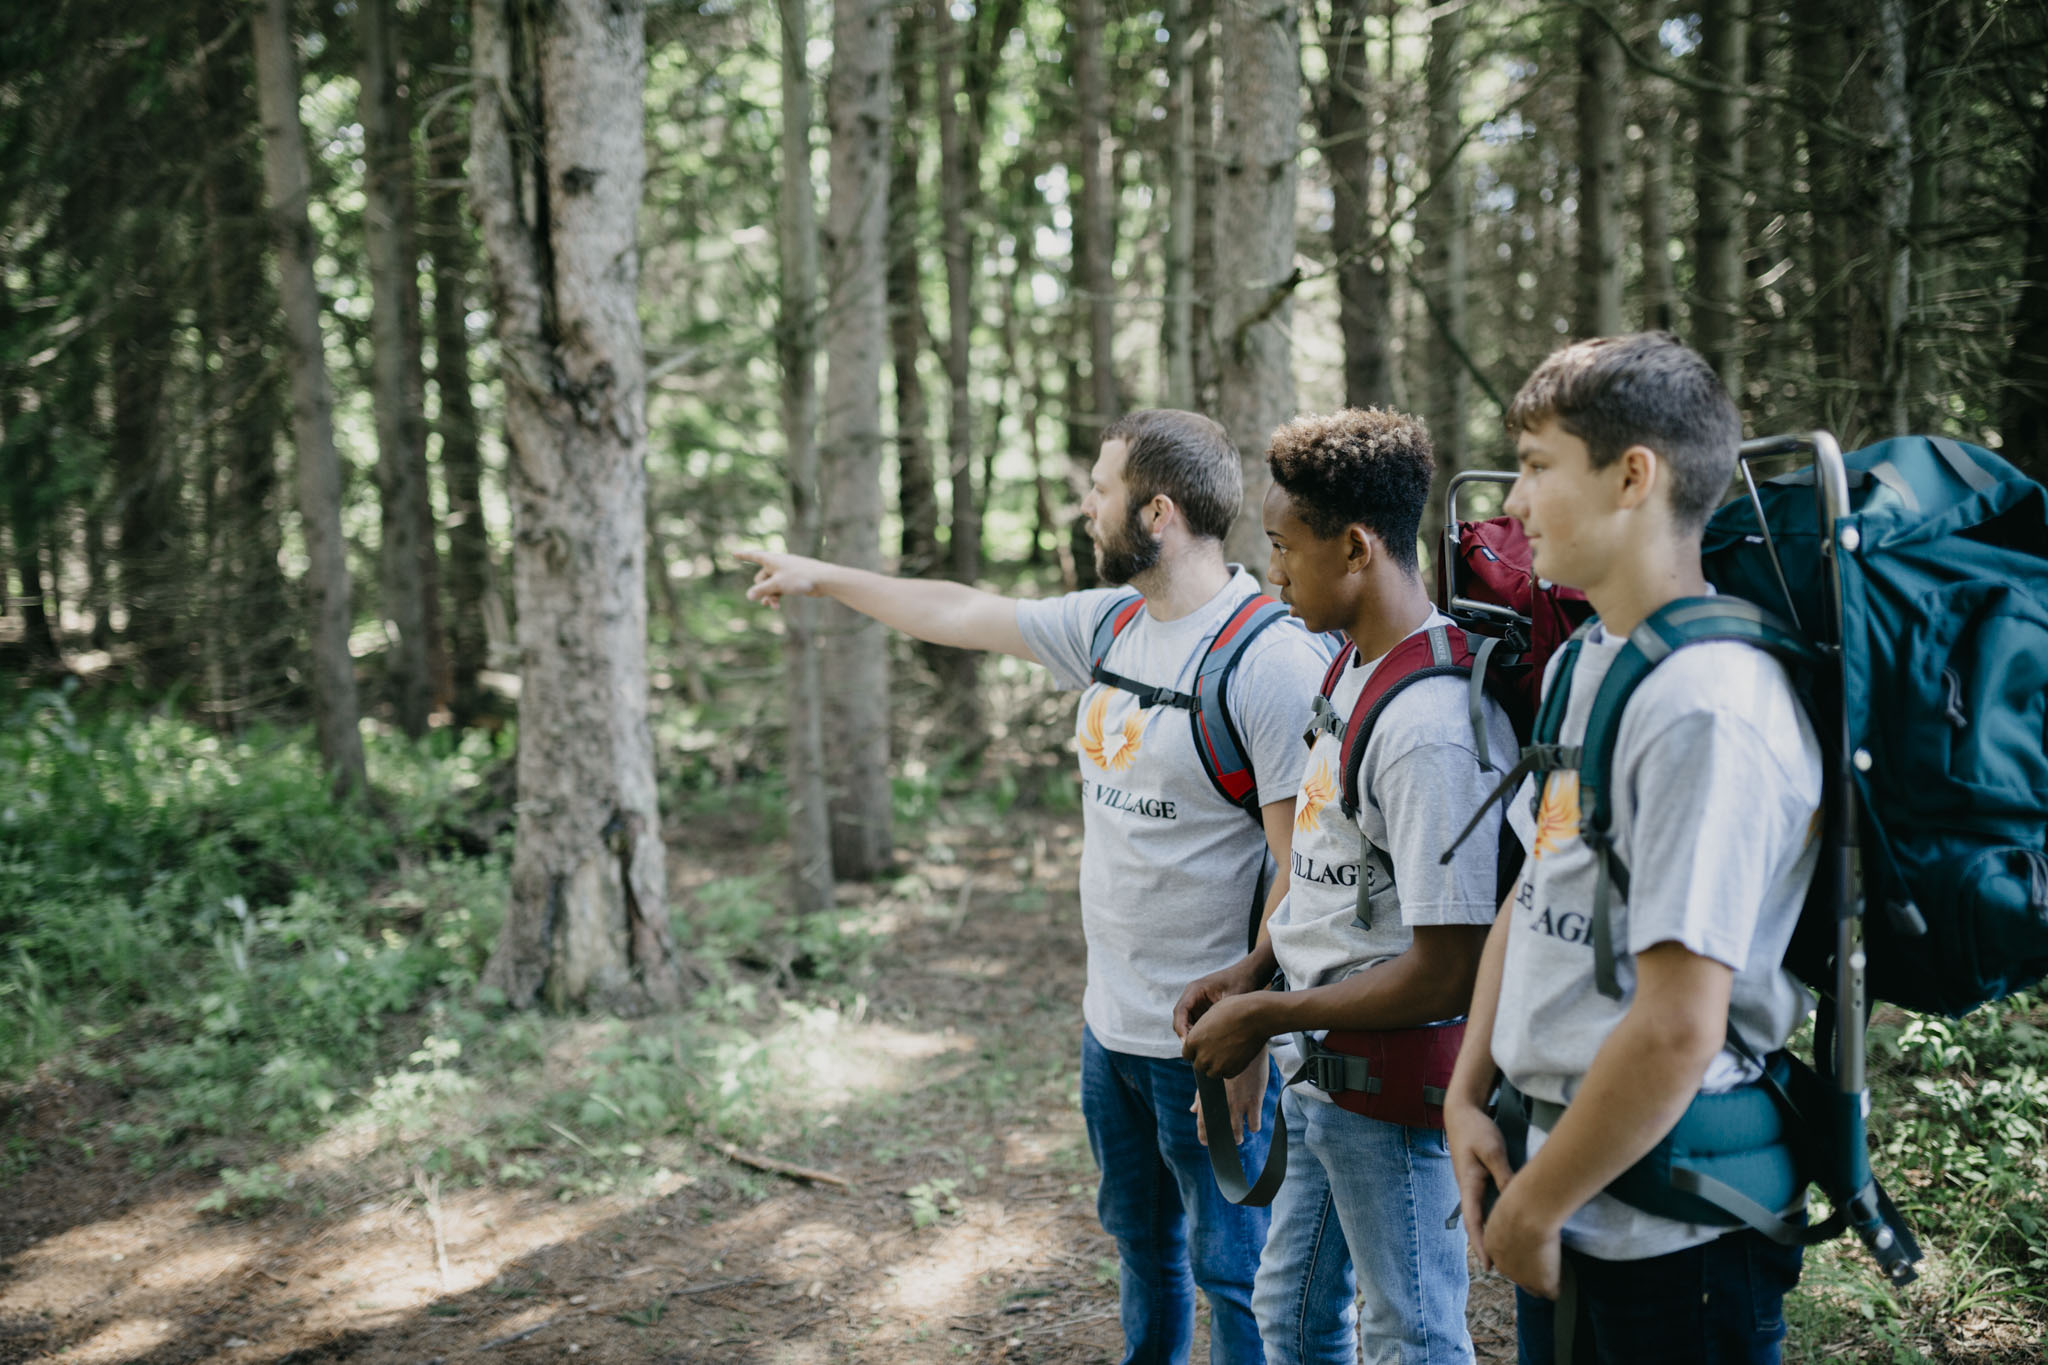 Two teens receive instruction from a staff on how to hike to the next location of events during their intervention summer camp